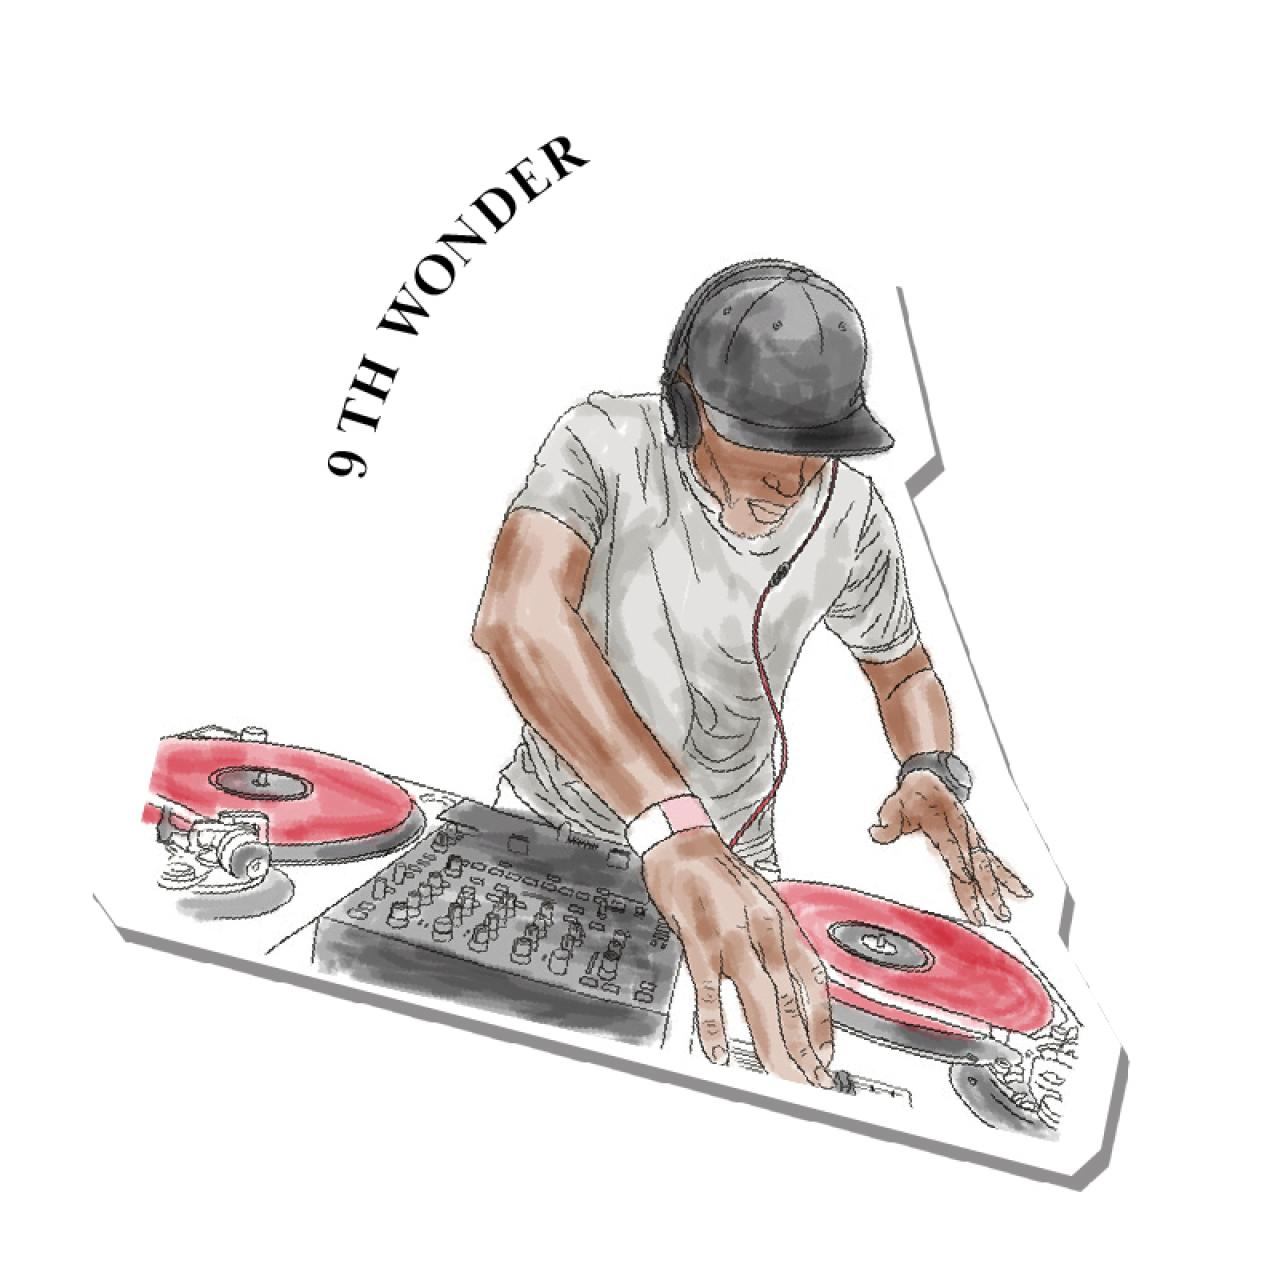 An illustration of 9th Wonder